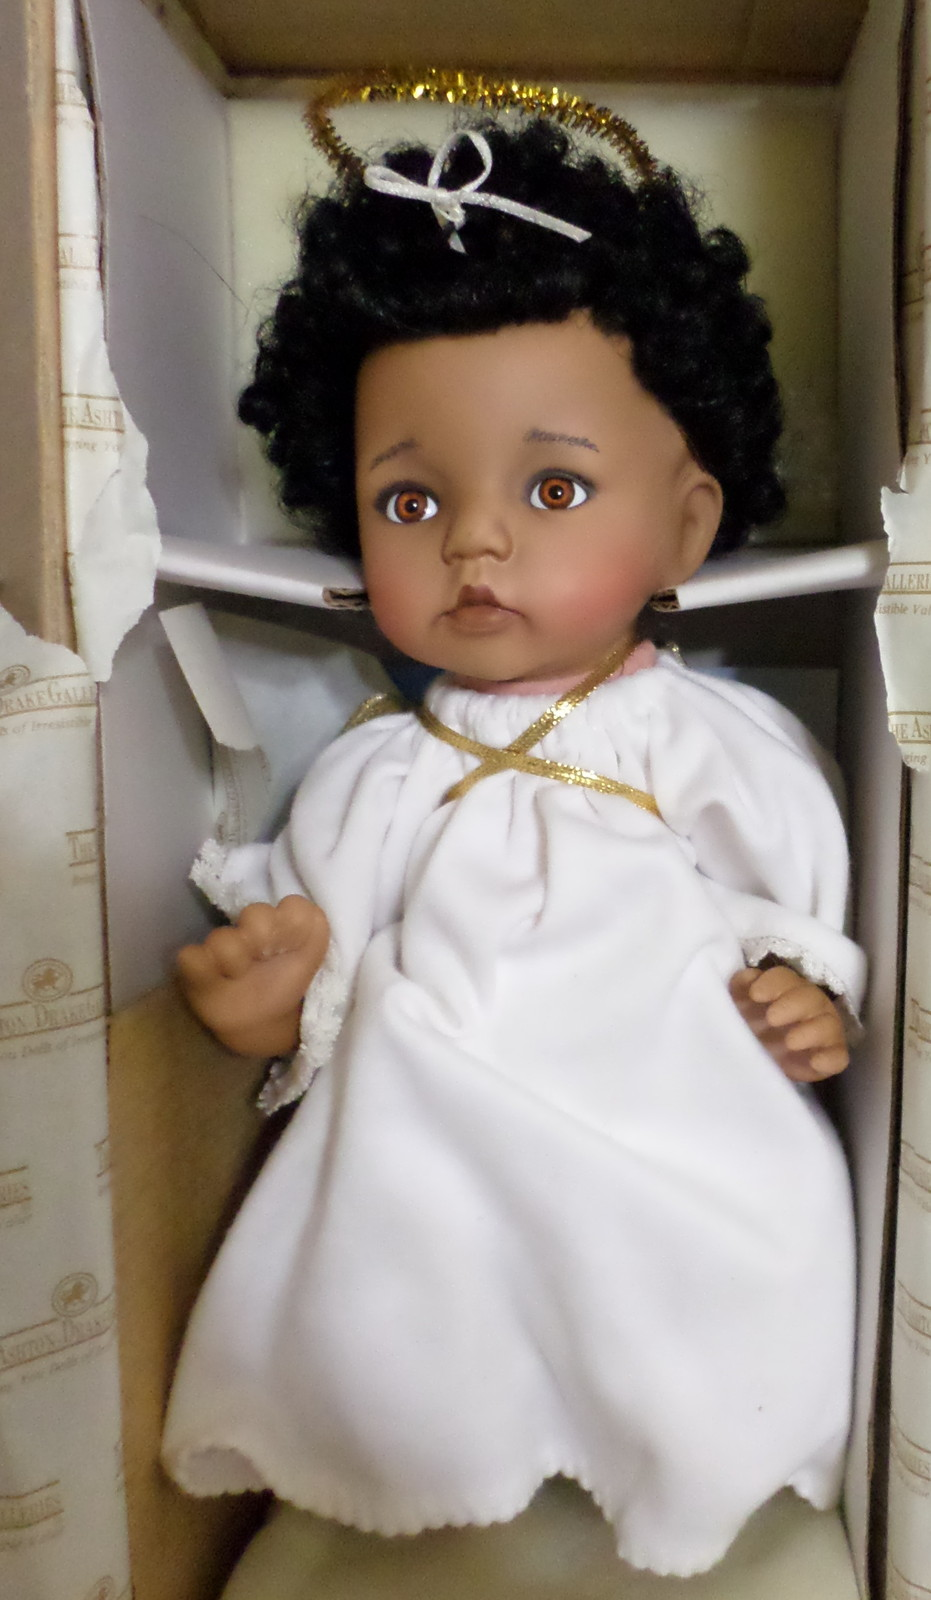 Ashton drake galleries angel face baby doll 1994 african for The ashton